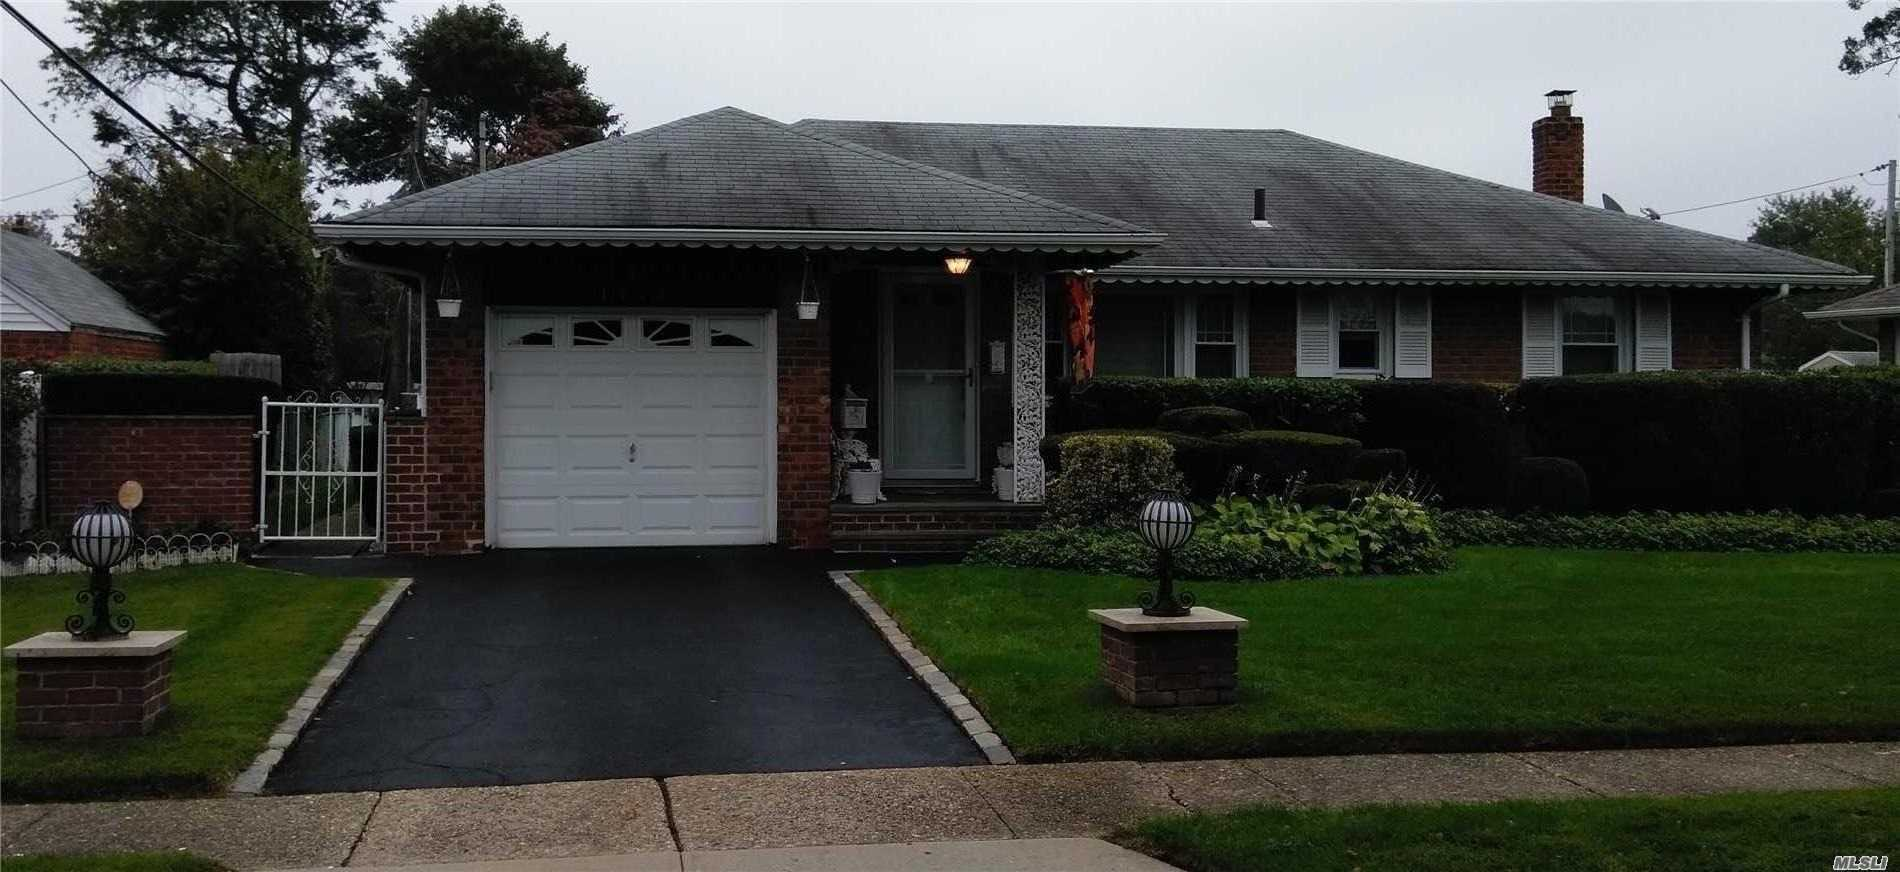 Beautiful Well Maintained All Brick Ranch Home In The Baldwin Oaks Community. 3 Bed Rooms, Huge Family Den, Large Back Yard. Very Large Full Finished Open Space Basement With High Ceiling, And Large Bar, Washer And Dryer Area And Half Bath. (Hard Wood Floors Beneath Carpet. Except Den And Basement)